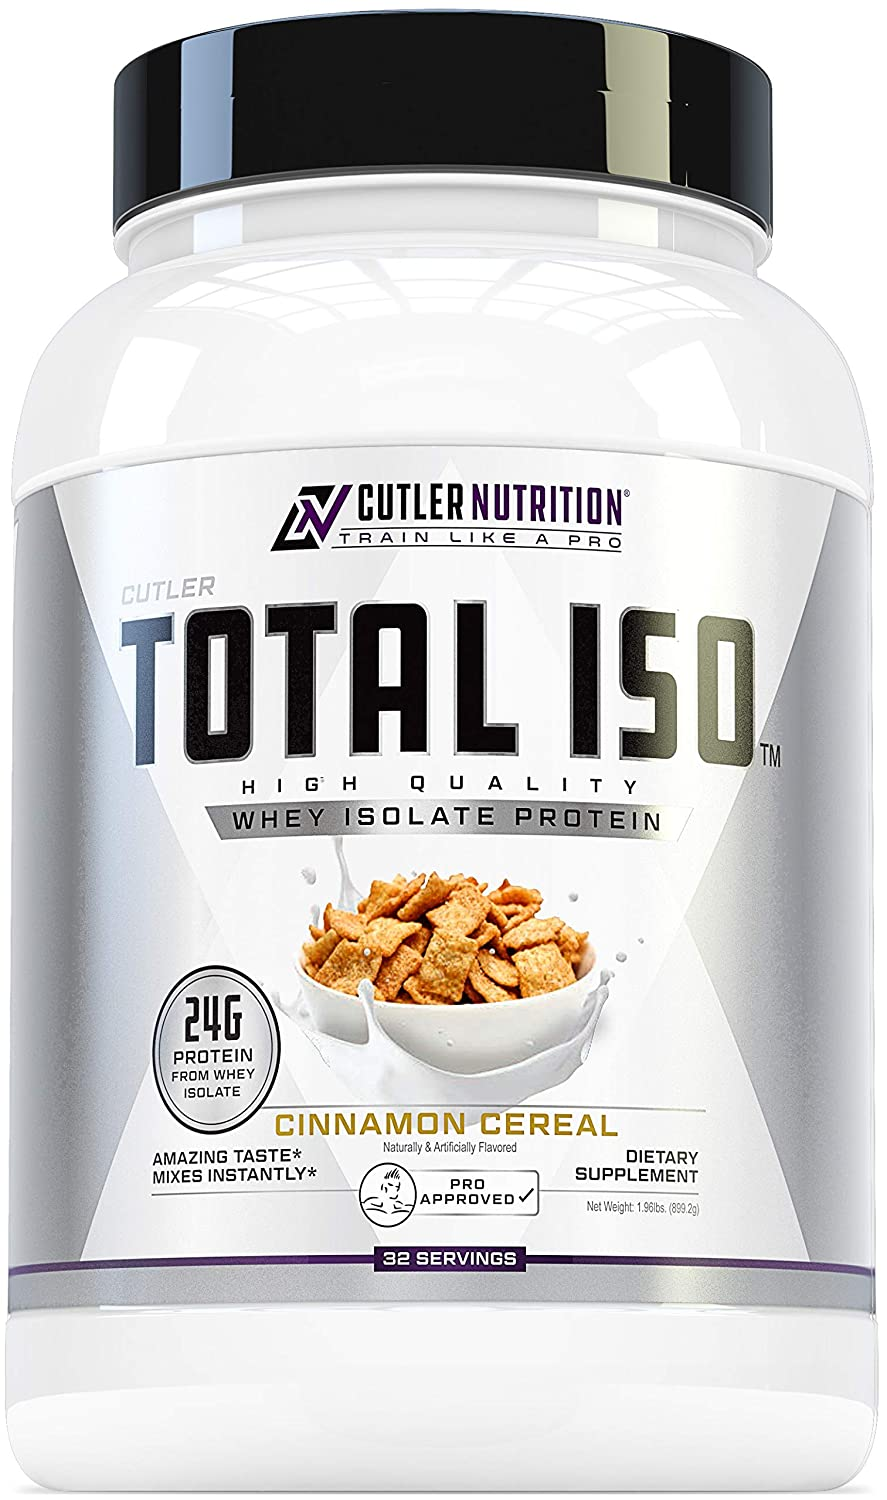 Total ISO Whey Isolate Protein Powder Best Tasting Whey Protein Shake Featuring 100 Whey Protein Isolate, Perfect Post Workout Protein Powder Mix and Meal Replacement Drink, Cinna Cereal, 2 Pounds